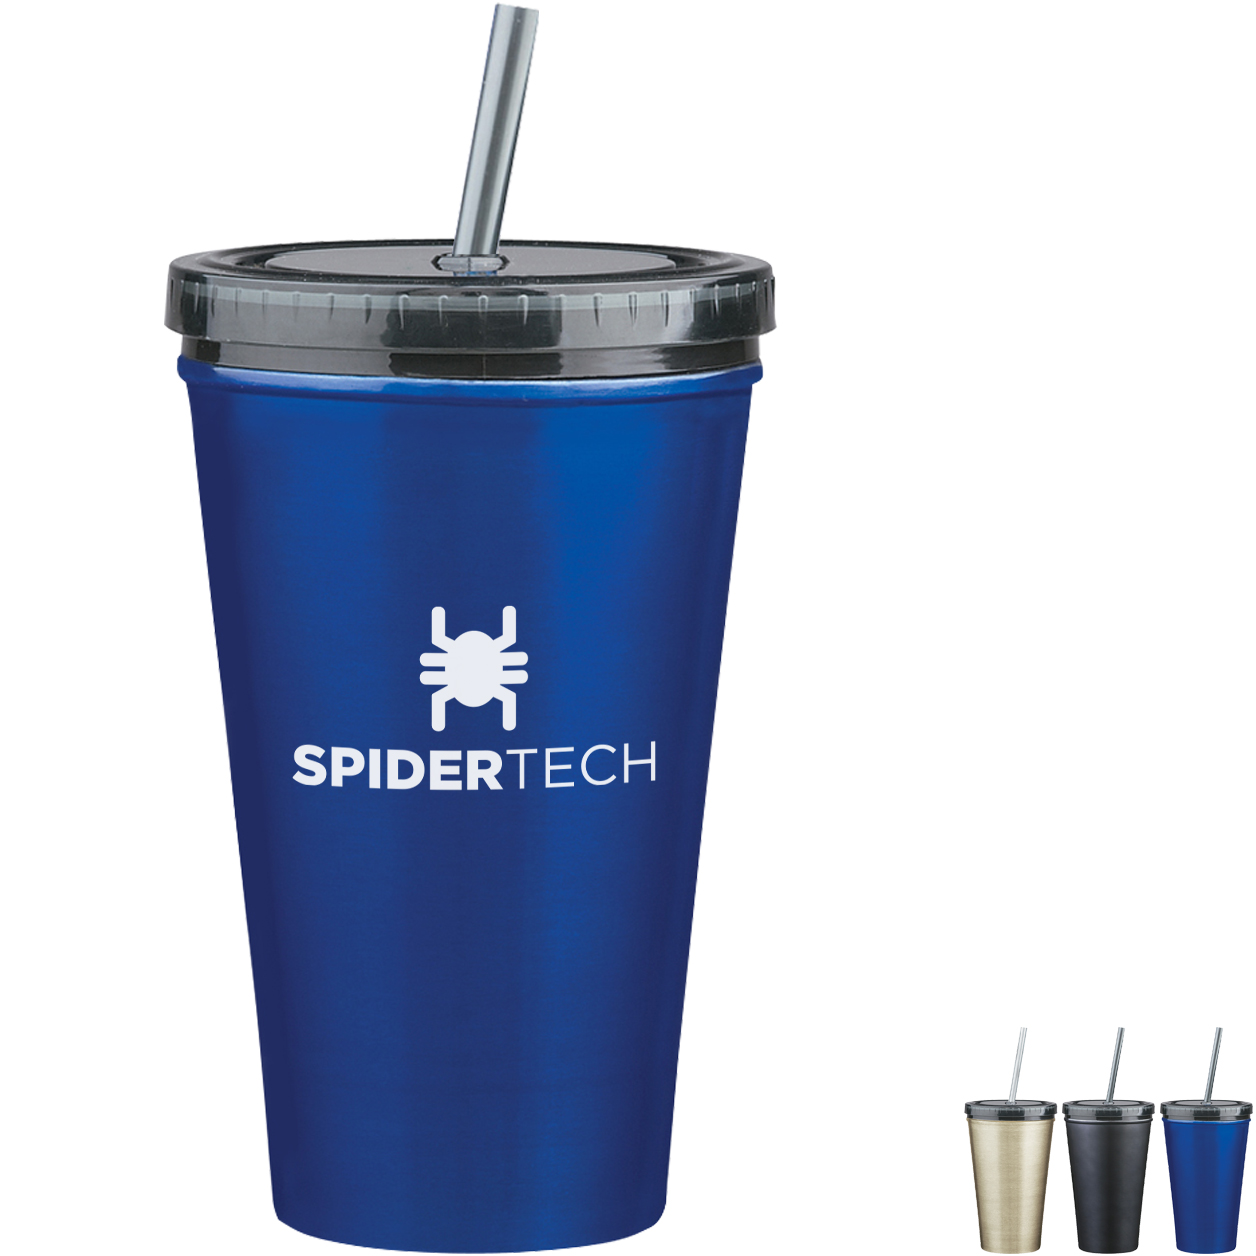 Double Wall Stainless Steel Tumbler w/ Straw, 16oz